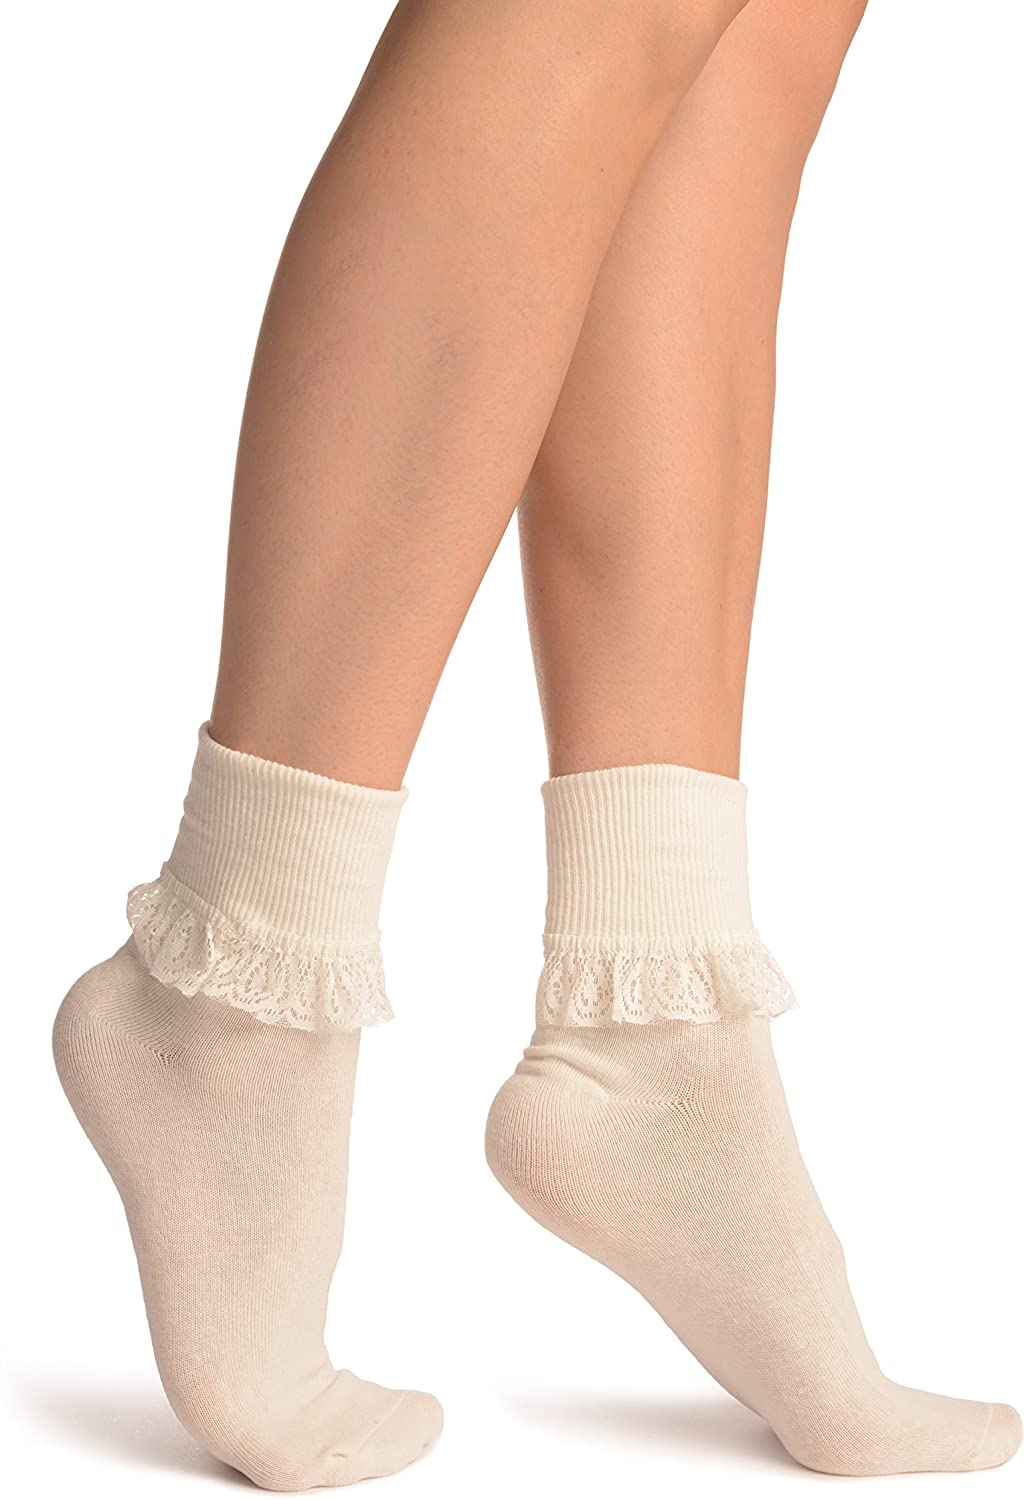 Cream With Cream Lace Trim Ankle High Socks - Socks